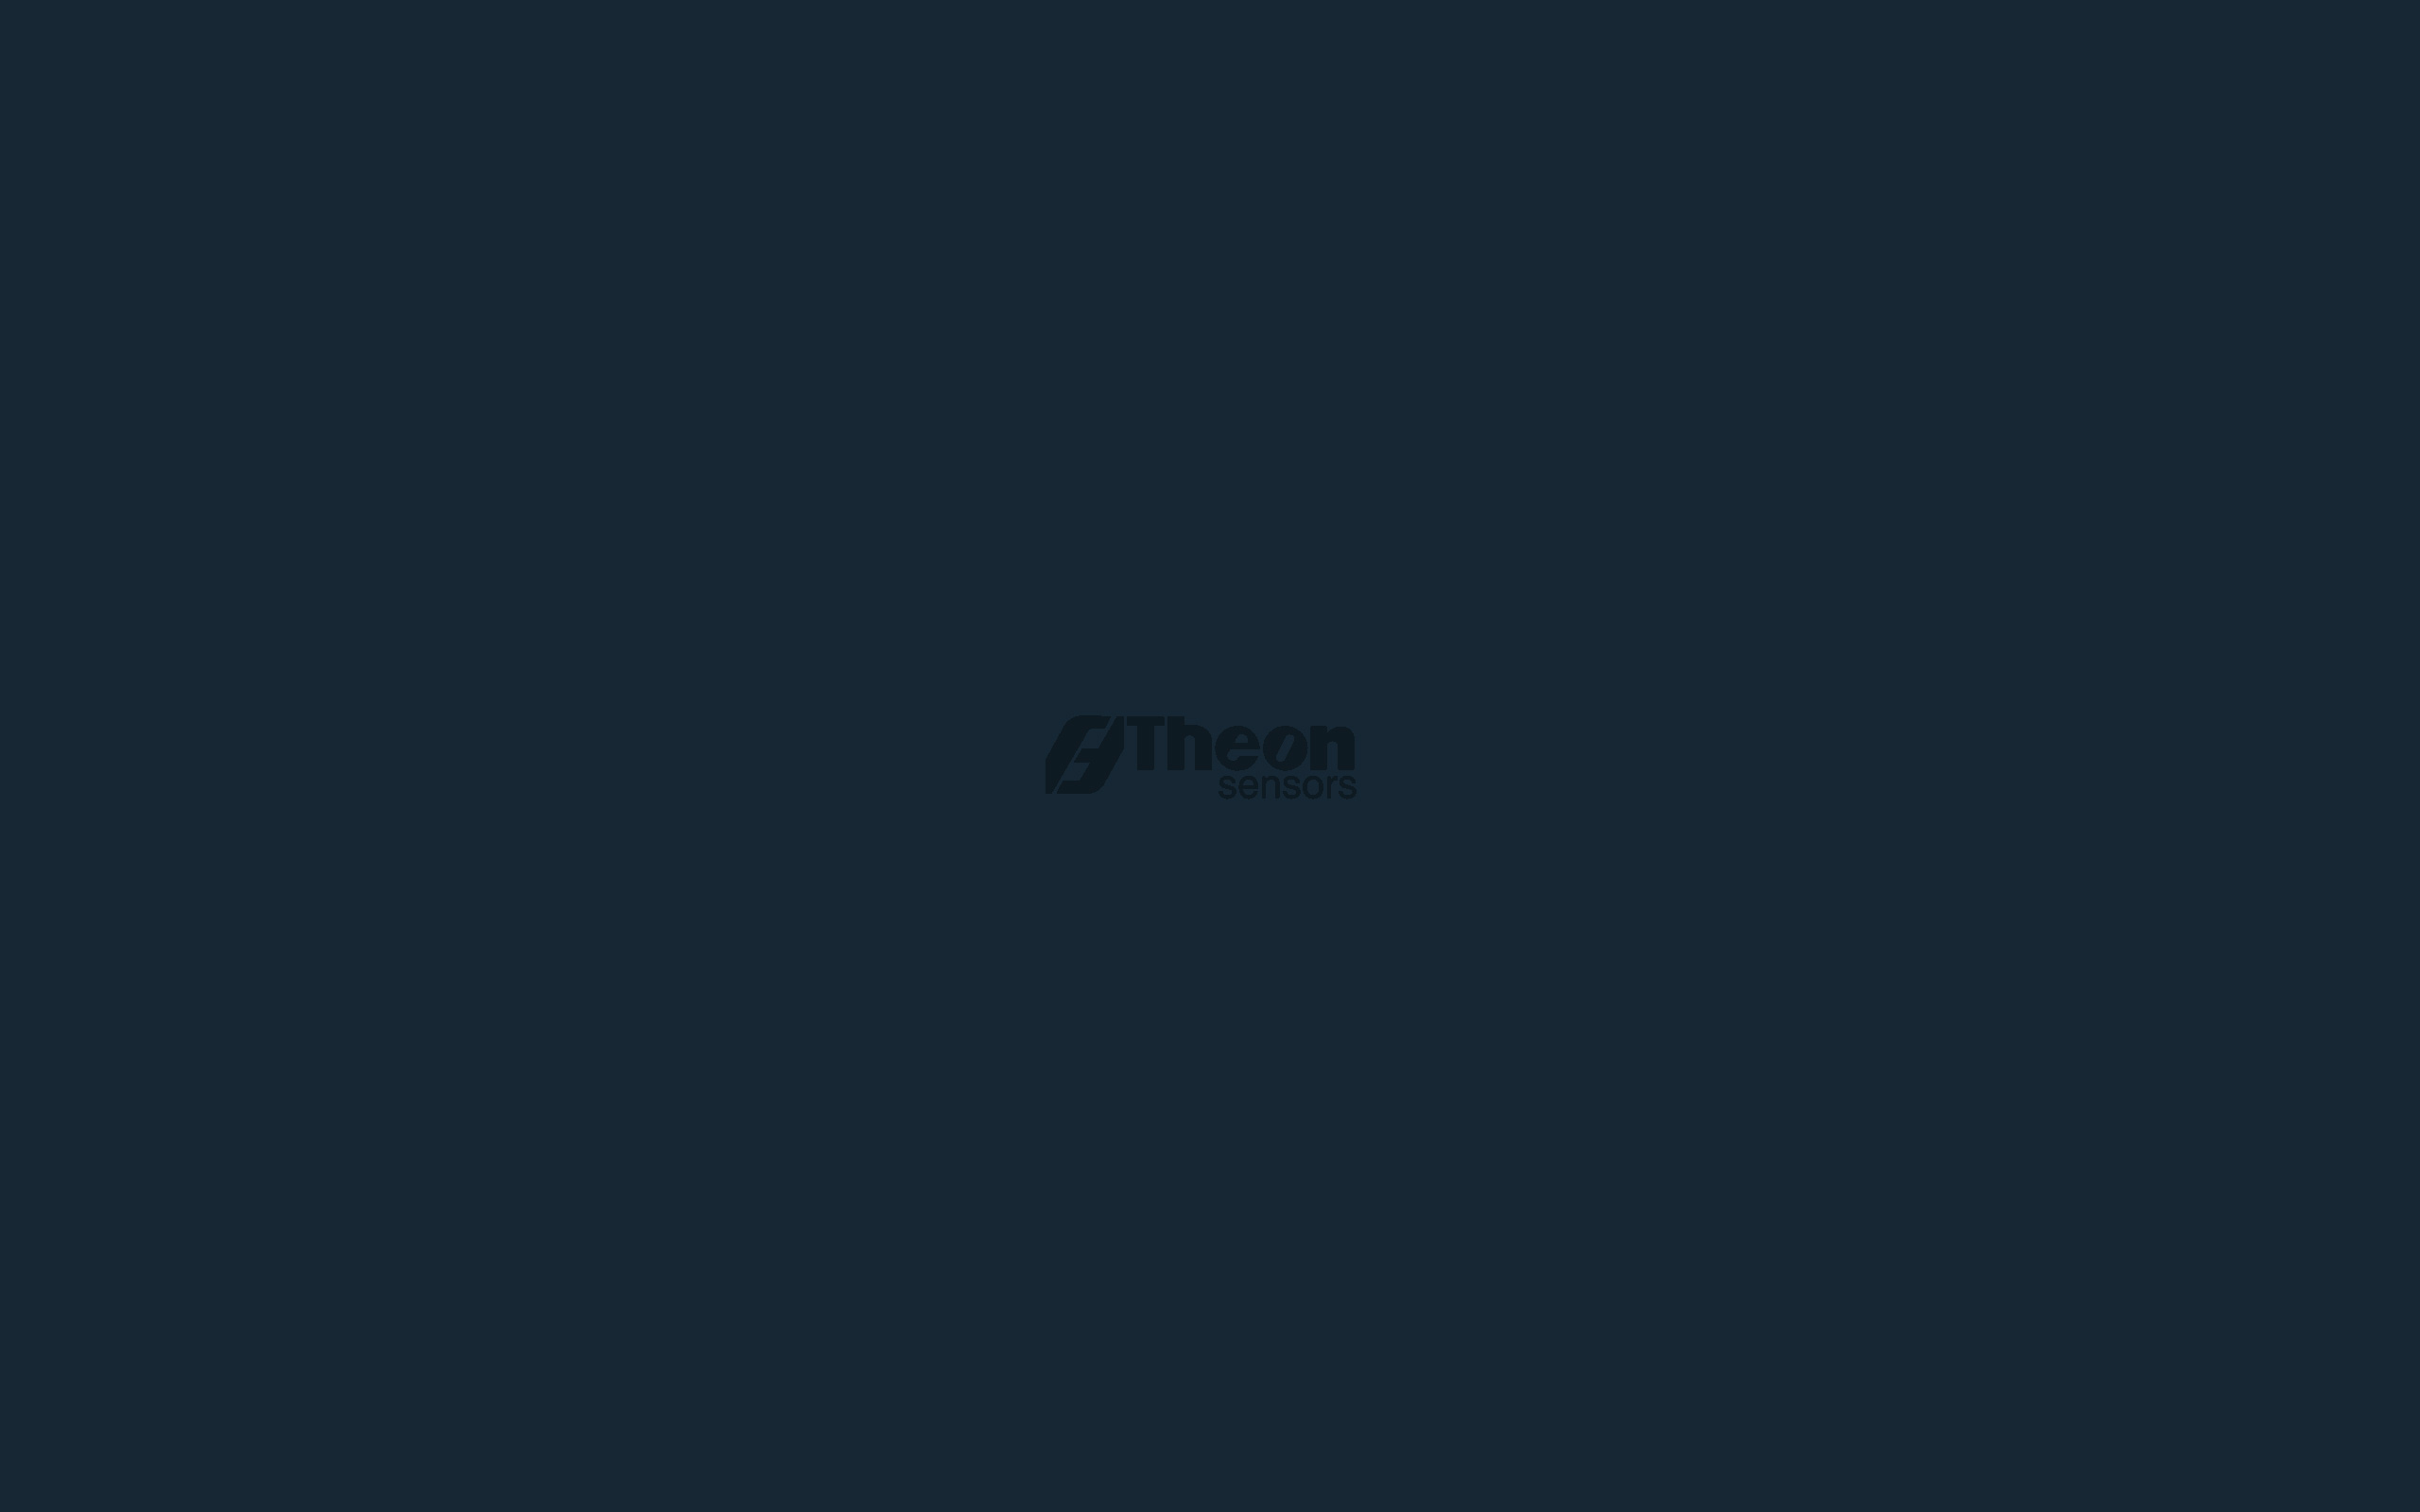 theon-sensors-background